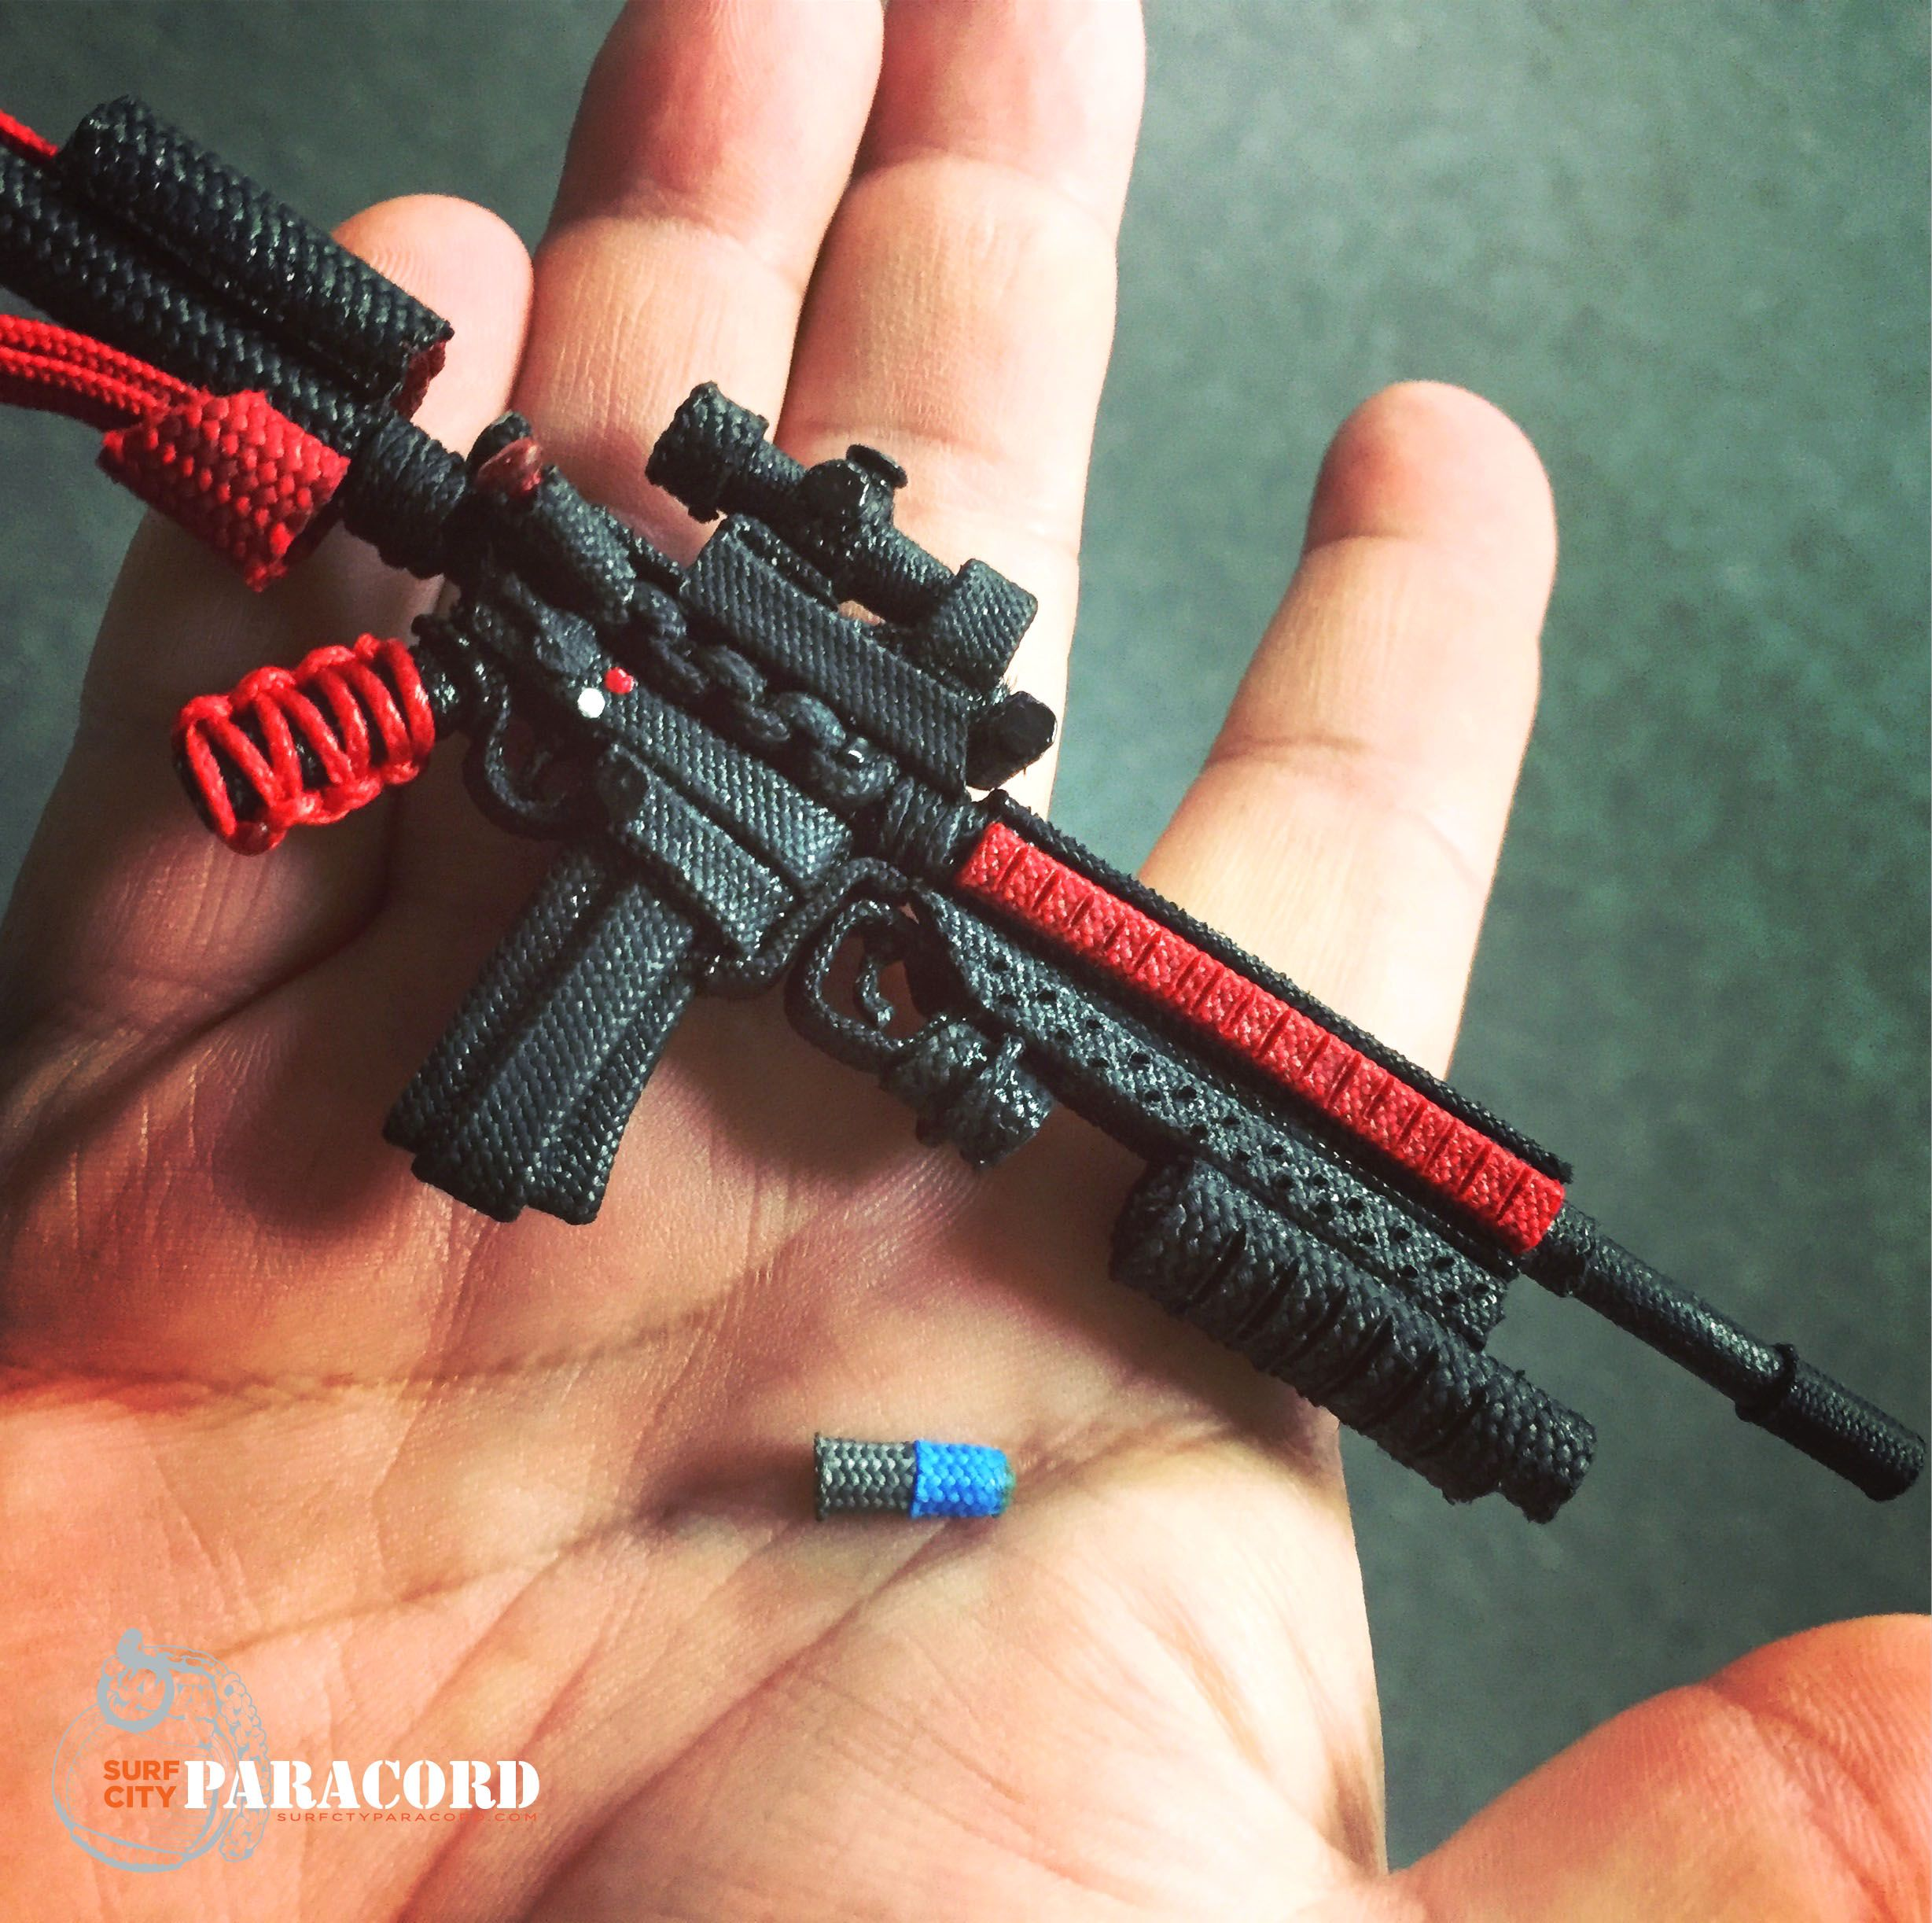 Miniature #ar15 replica made out of #paracord  | Best of